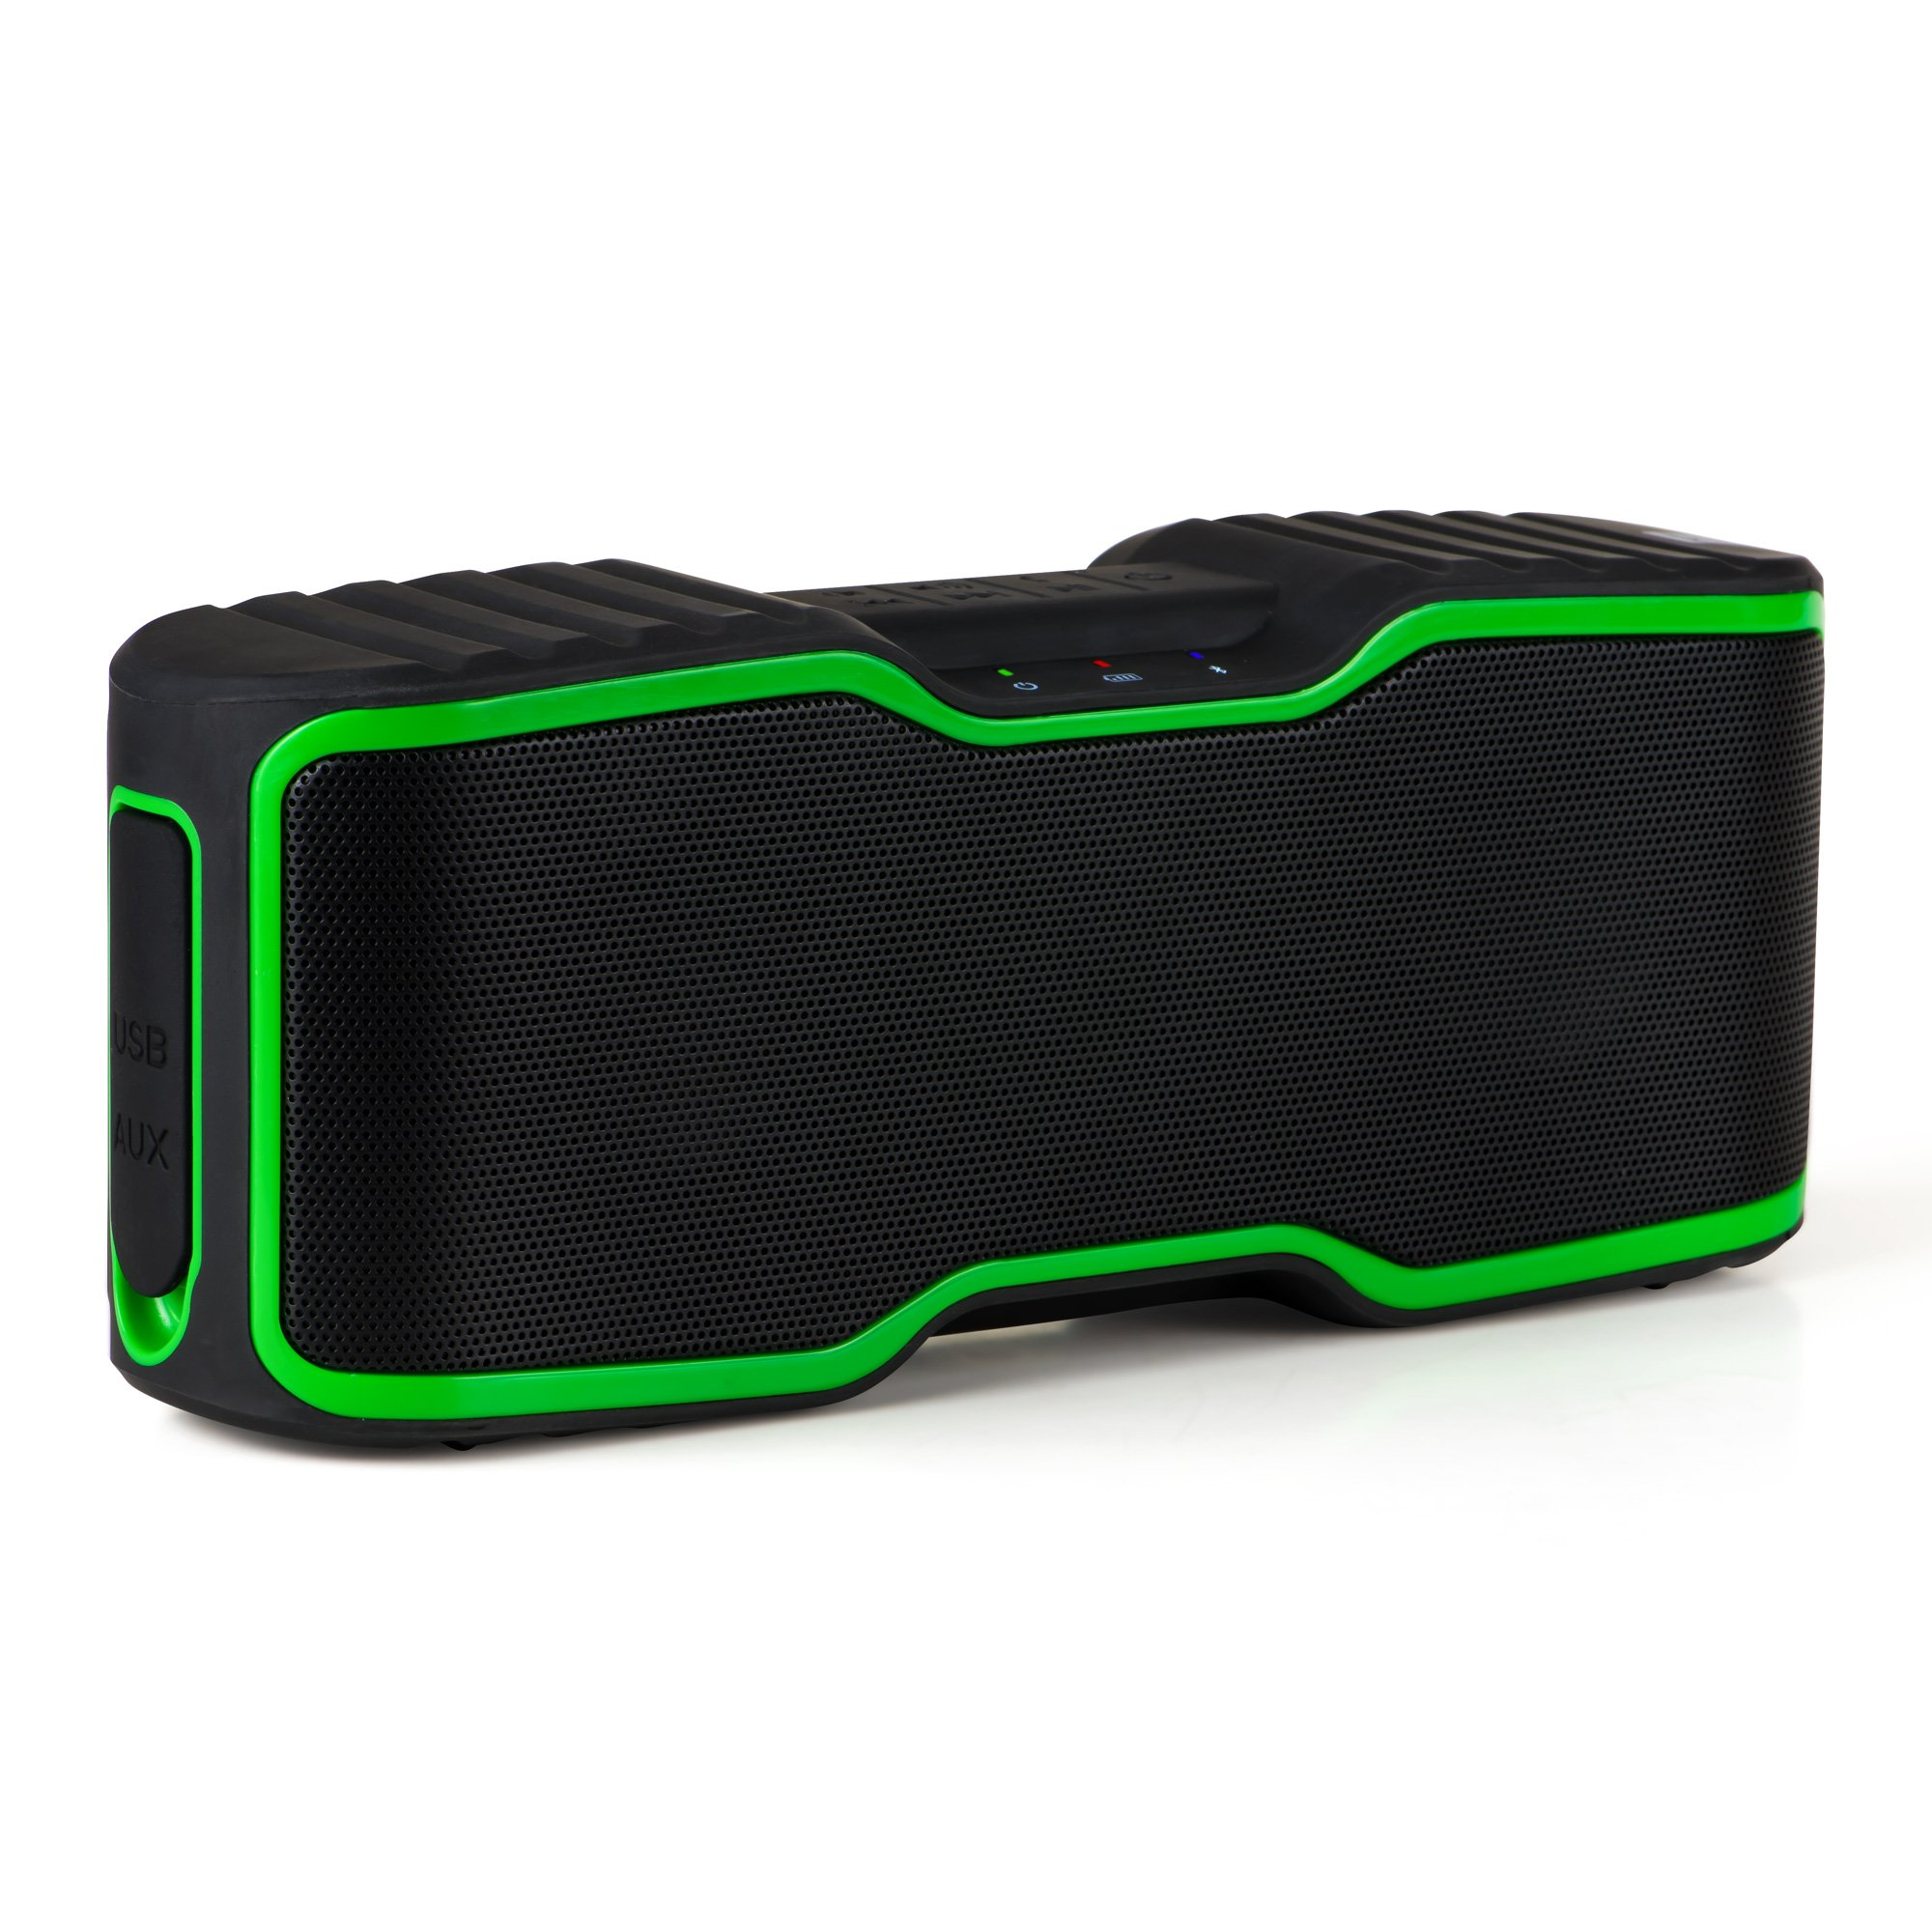 Port Wireless Waterproof Bluetooth Stereo Speaker for Thumbing Bass&Powerful 20W Sound|Durable & Portable for Underwater/Outdoor Adventures,Pair Up with iPhone, Android Cell Phone,iPad, iPod, Echo Dot